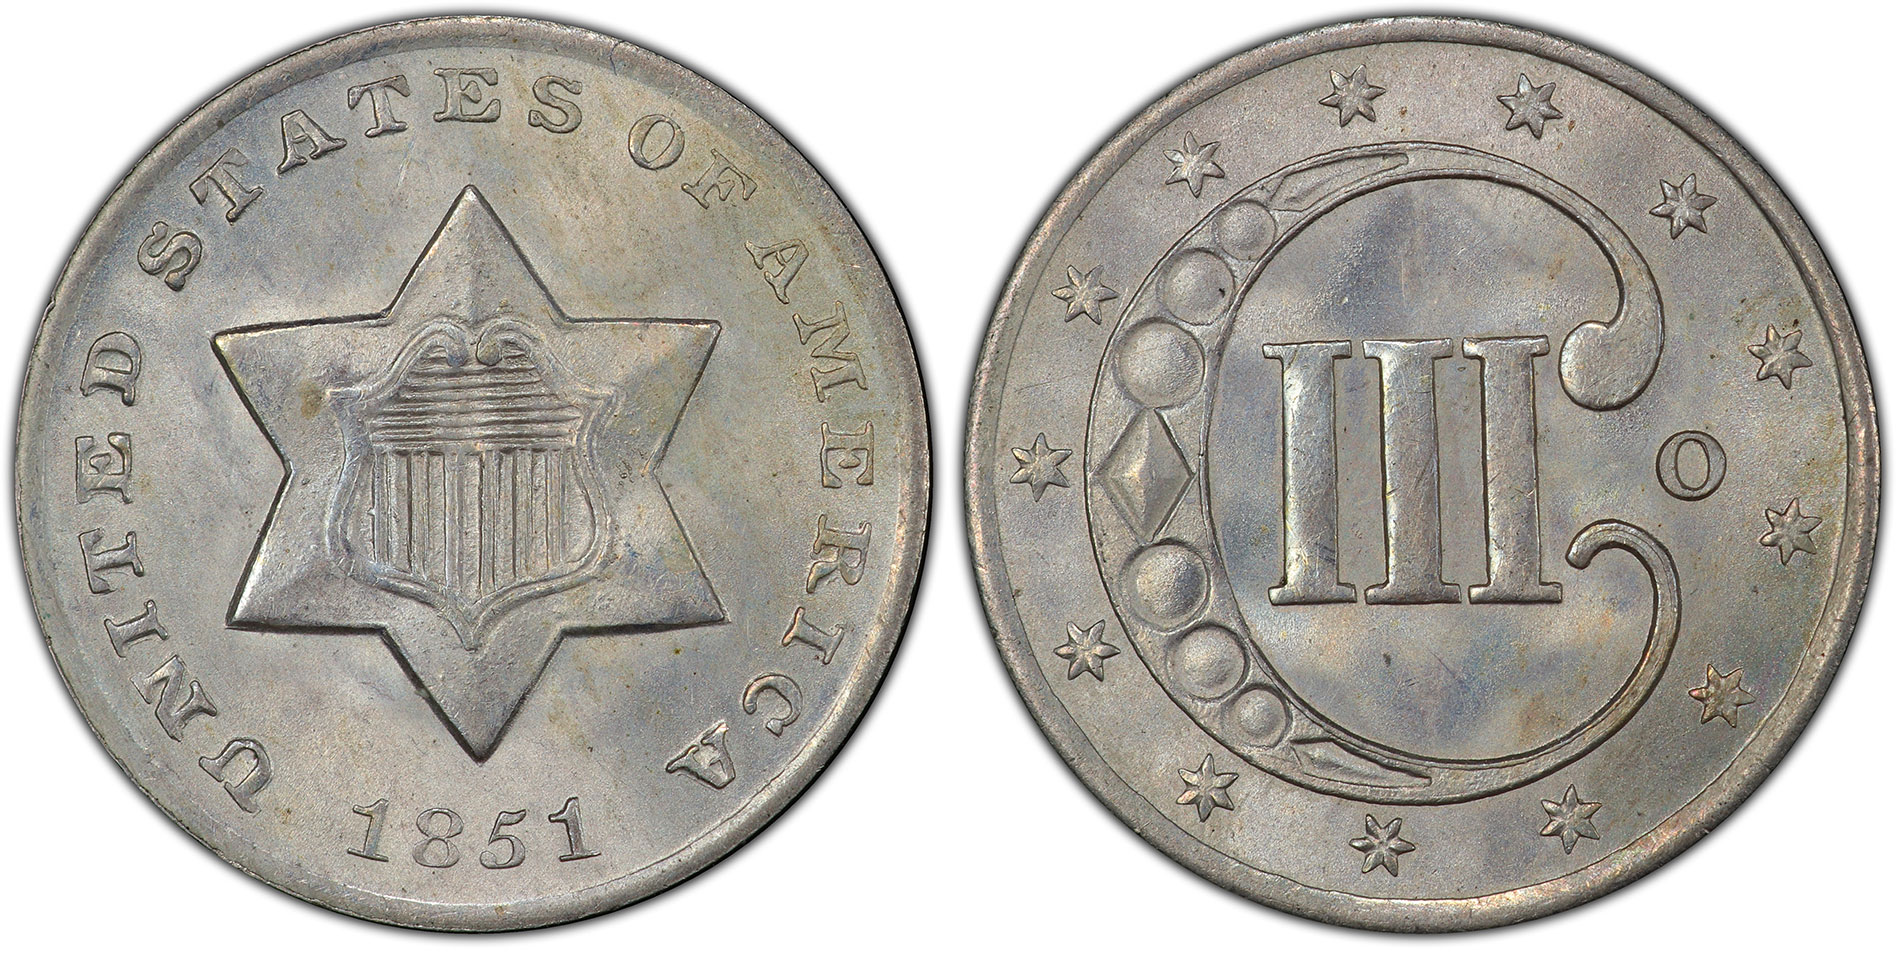 The one-year-only issue of 1851-O Three Cent Silver. Courtesy of PCGS TrueView